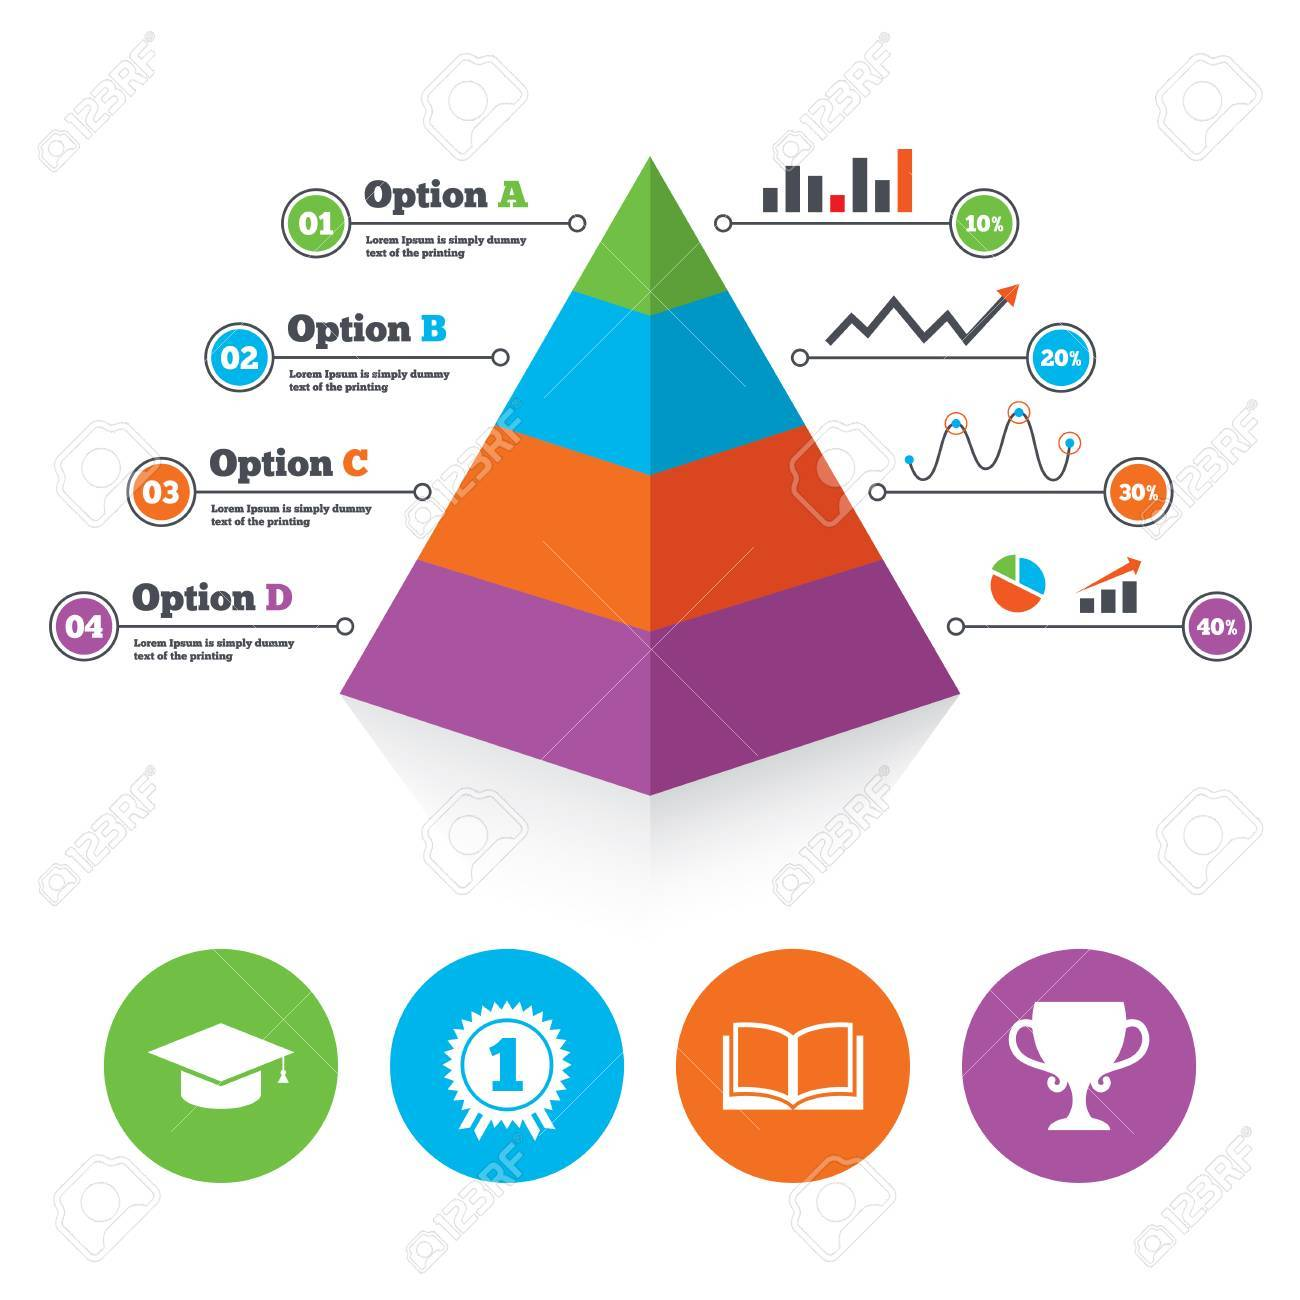 Pyramid Chart Template Graduation Icons Student Cap Sign Education Book Symbol